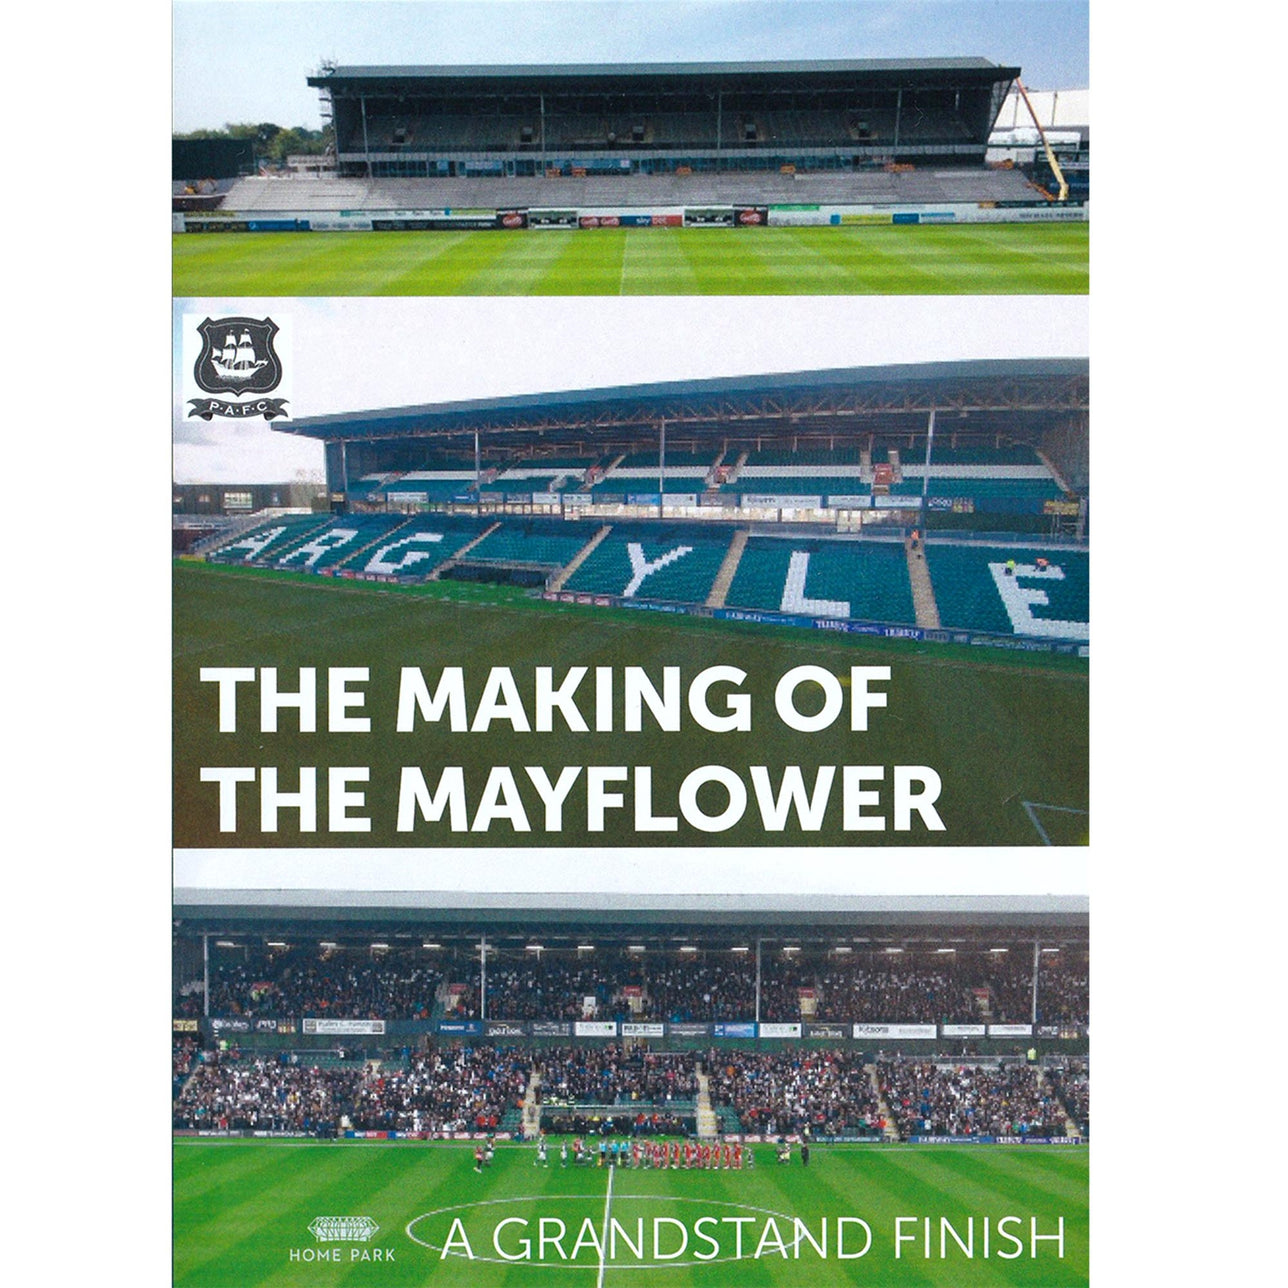 The Making of The Mayflower DVD